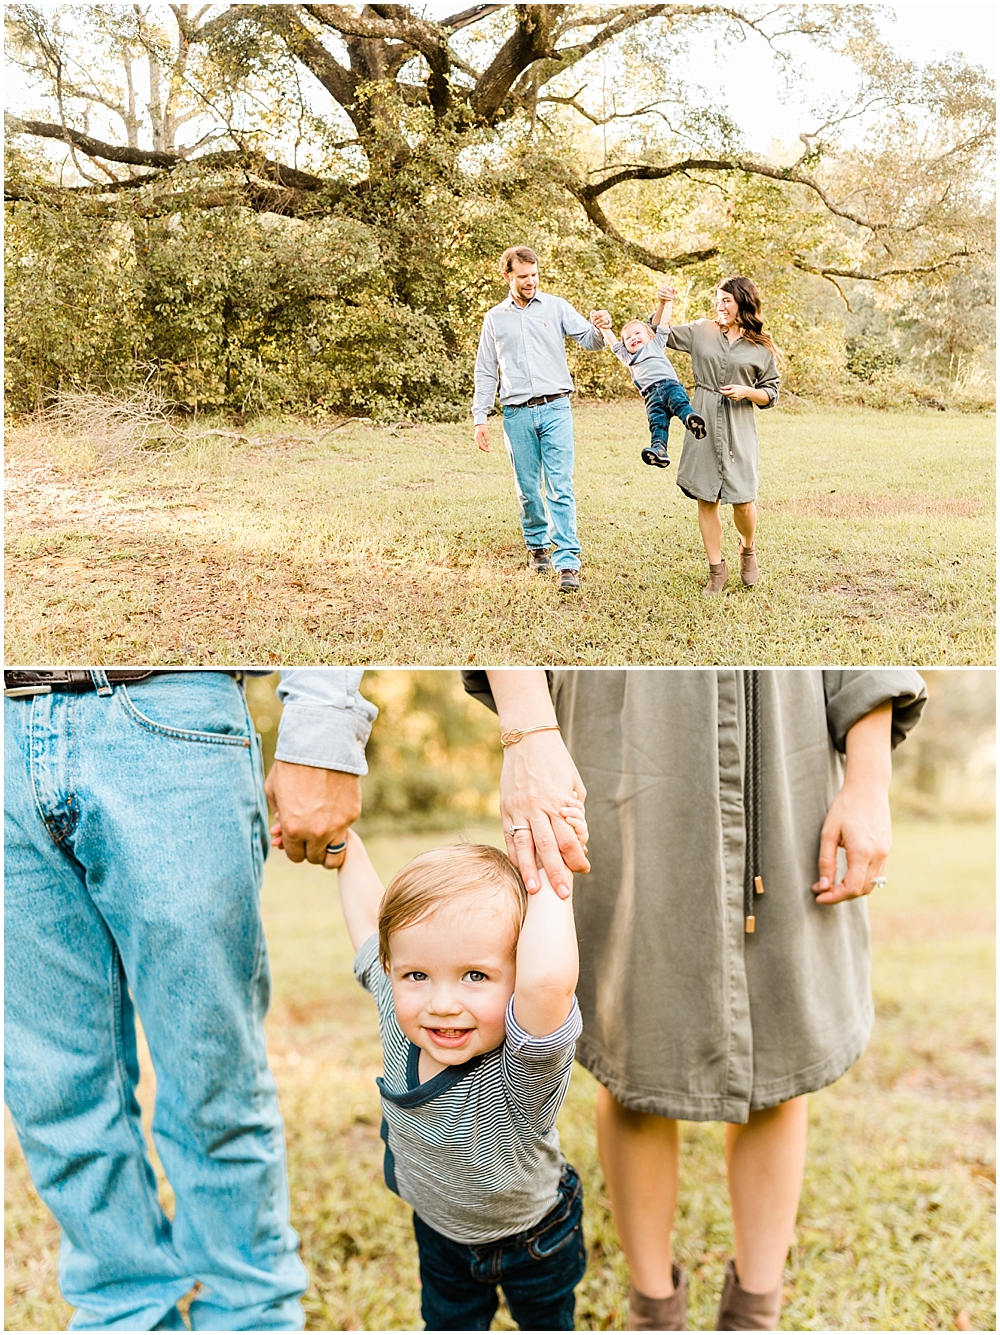 Ashton-Clark-Photography-Wedding-Portrait-Family-Photographer-Mobile-Alabama_0019.jpg